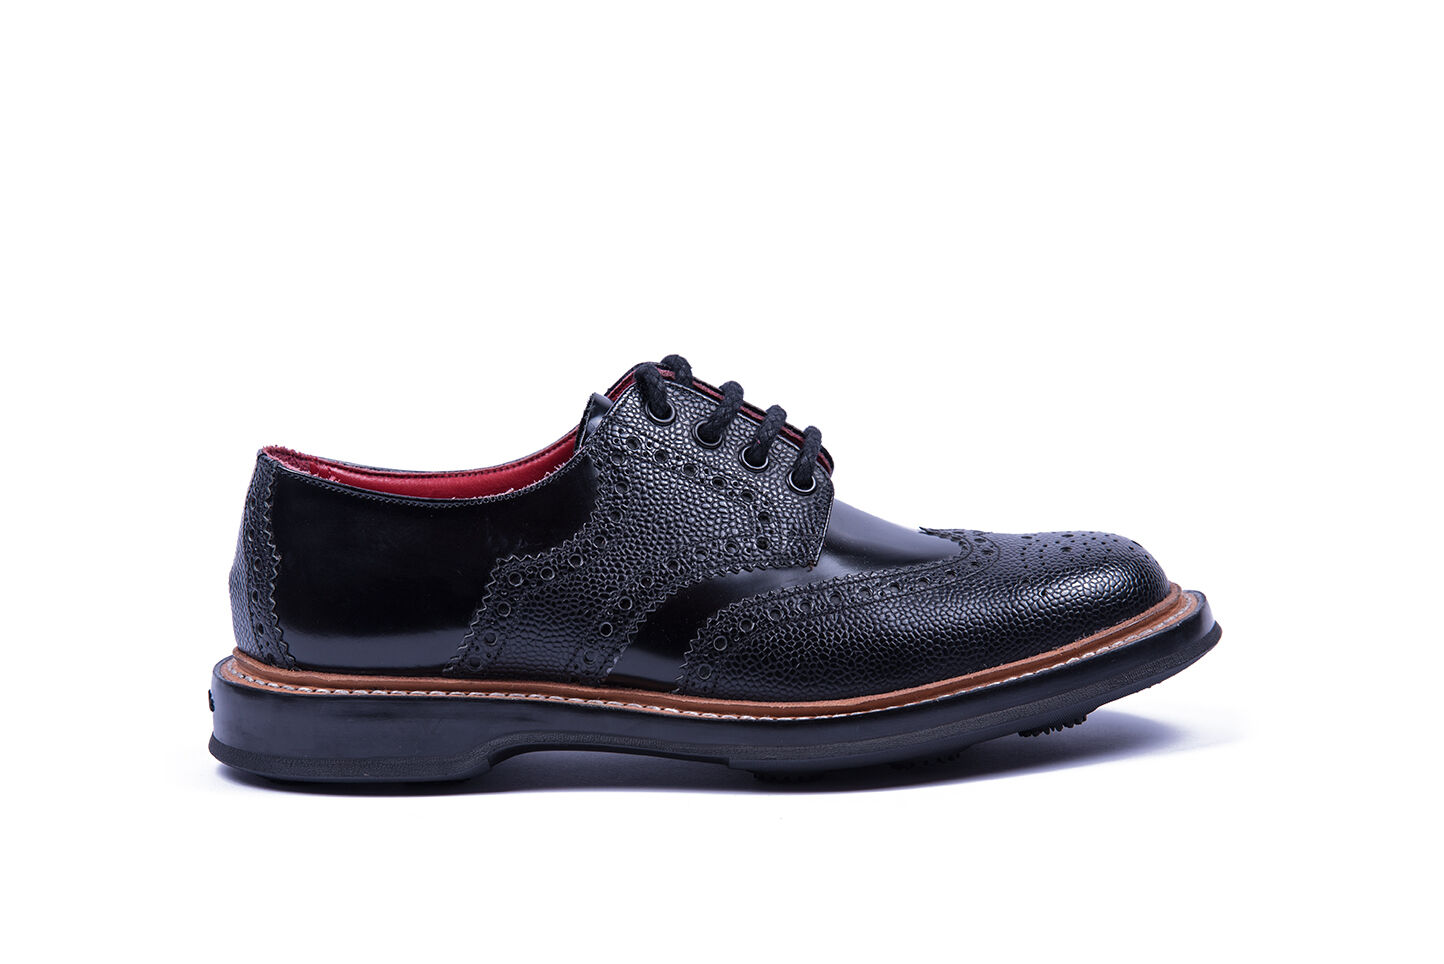 Church's OFFERTA all'inglese mod. Farthingston nero OFFERTA Church's ULTIME PAIA (33C) 97113b